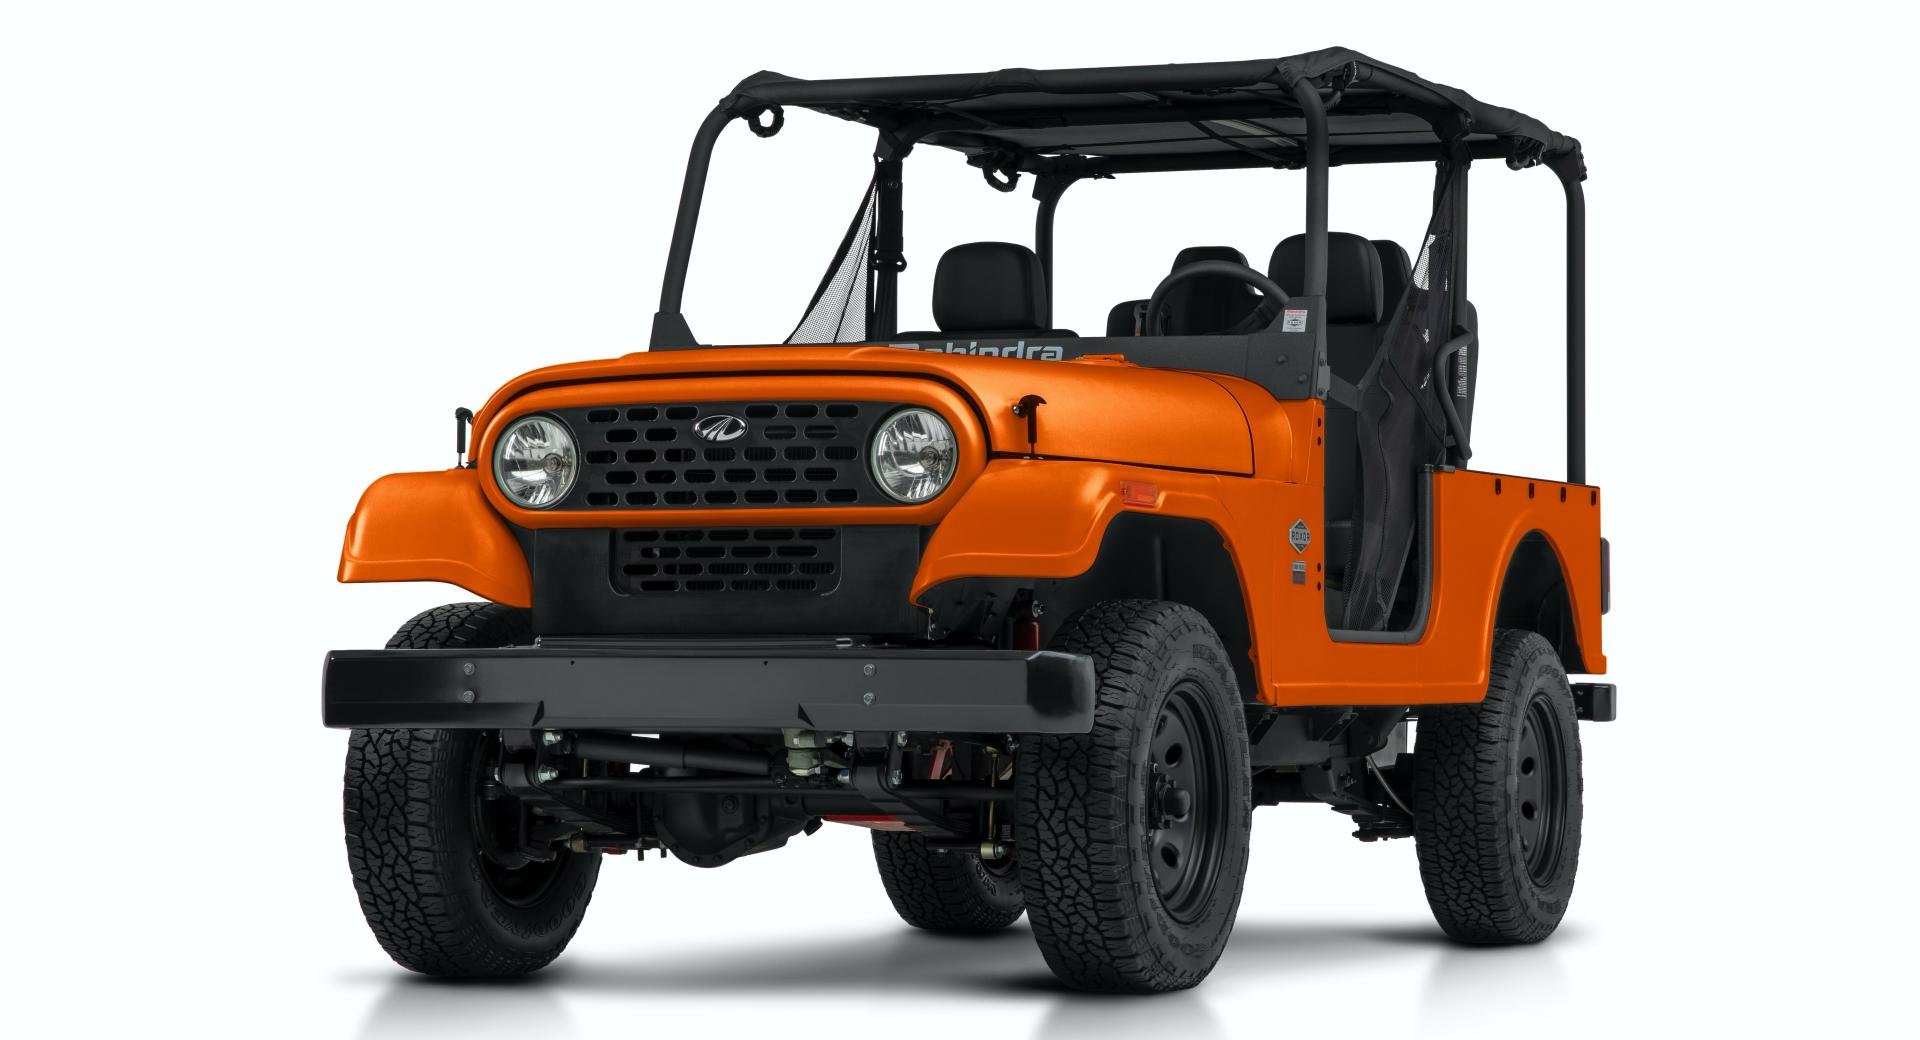 Just Change One Thing: Mahindra Changes Grille On Roxor; Jeep Still Trying To Shut Them Down